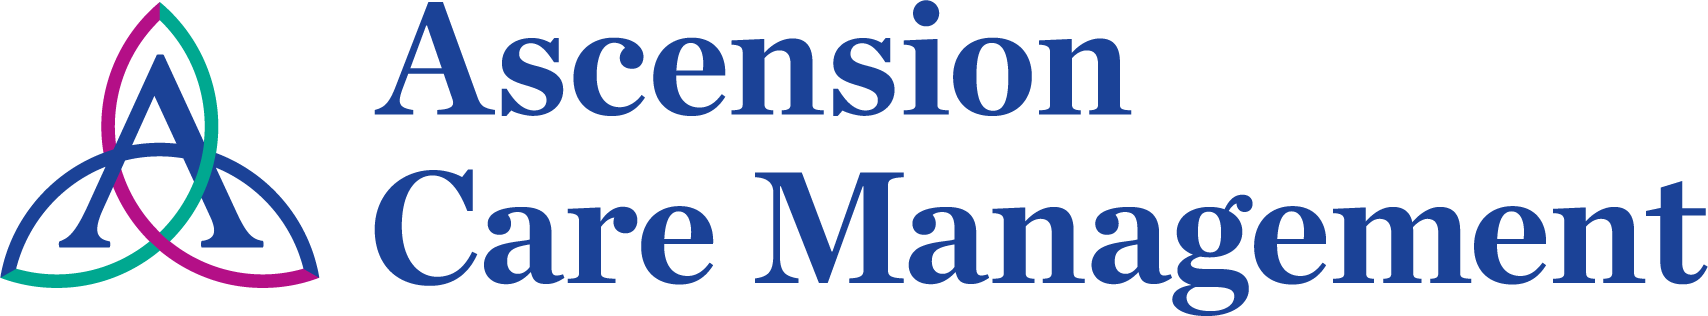 caremanagementsubsidiarylogo